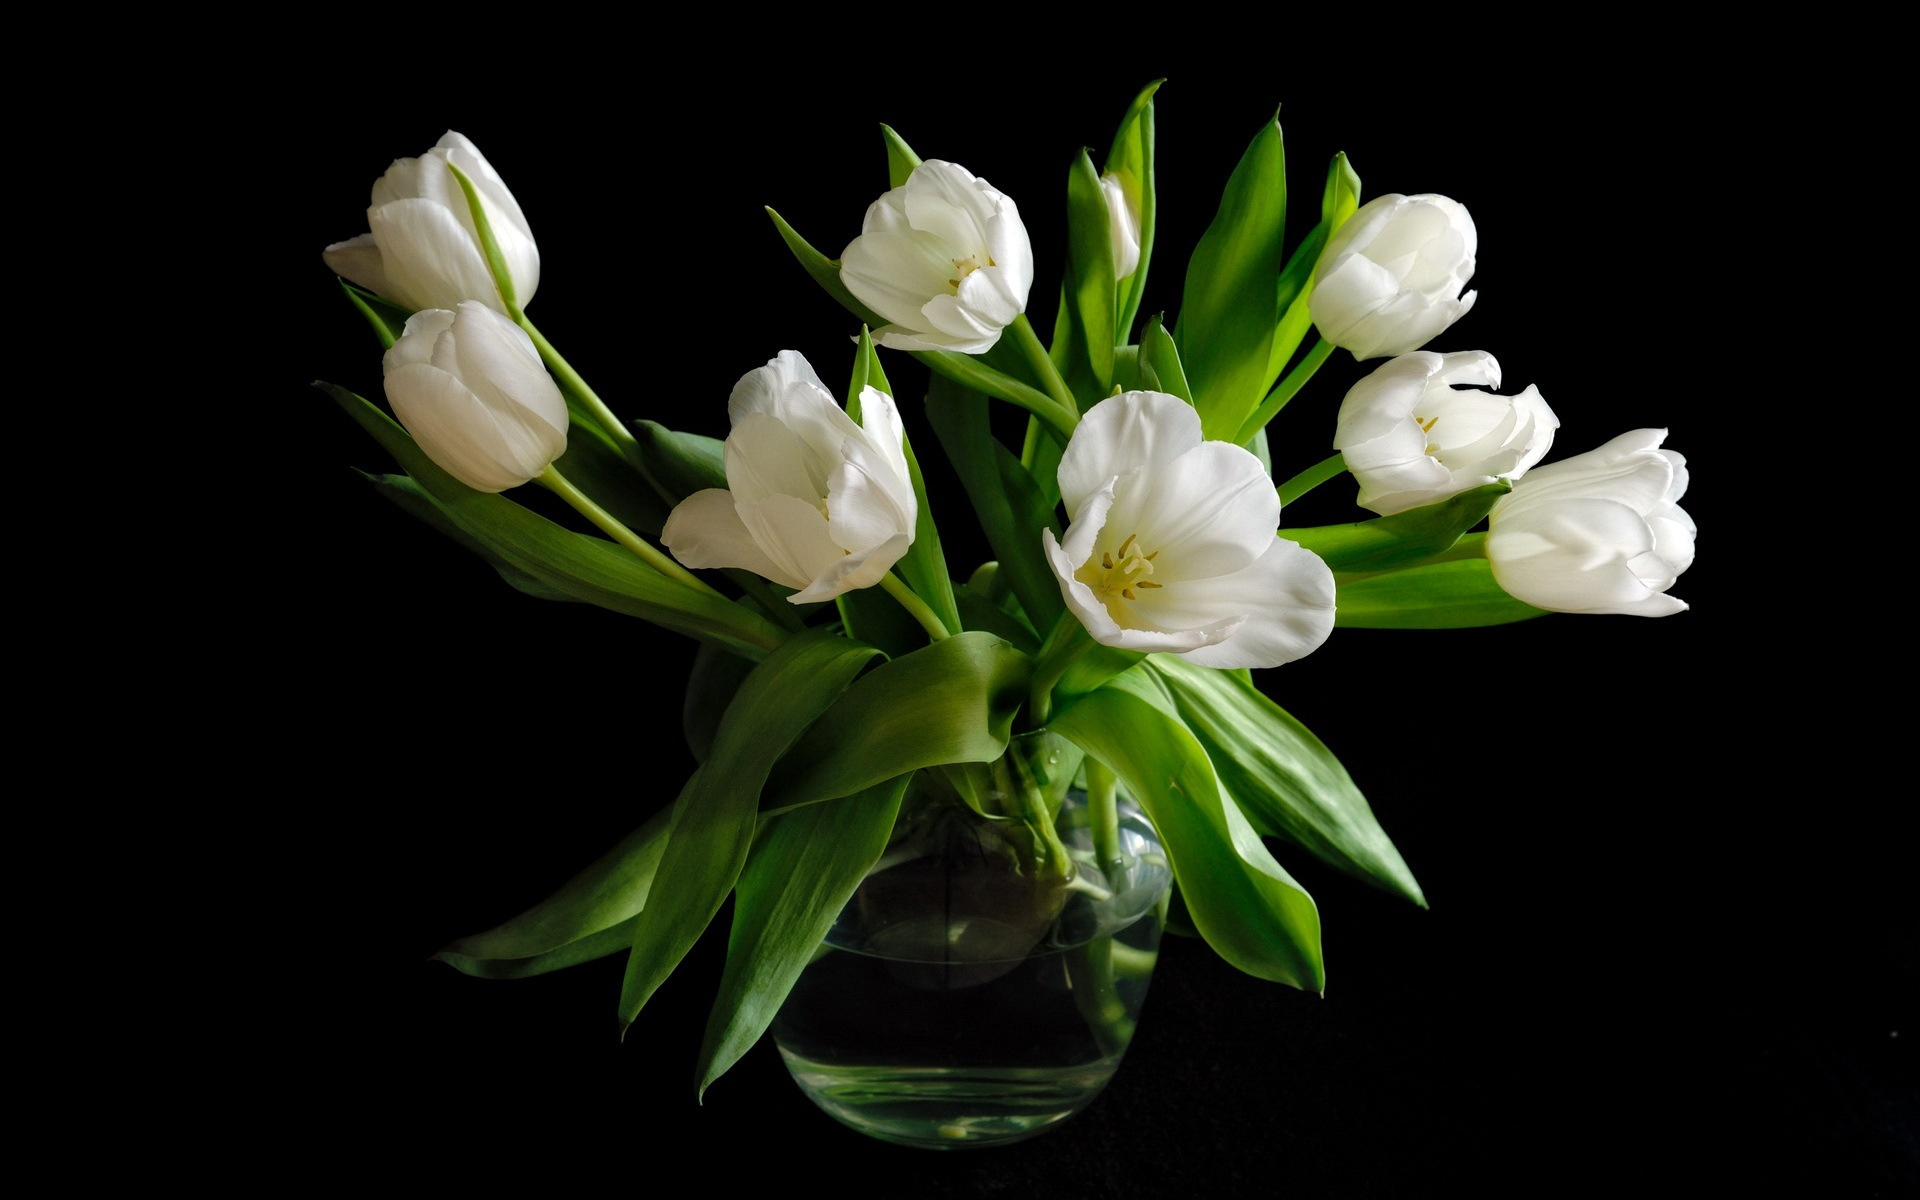 Wallpaper Vase White Tulip Flowers Black Background 1920x1200 Hd Picture Image